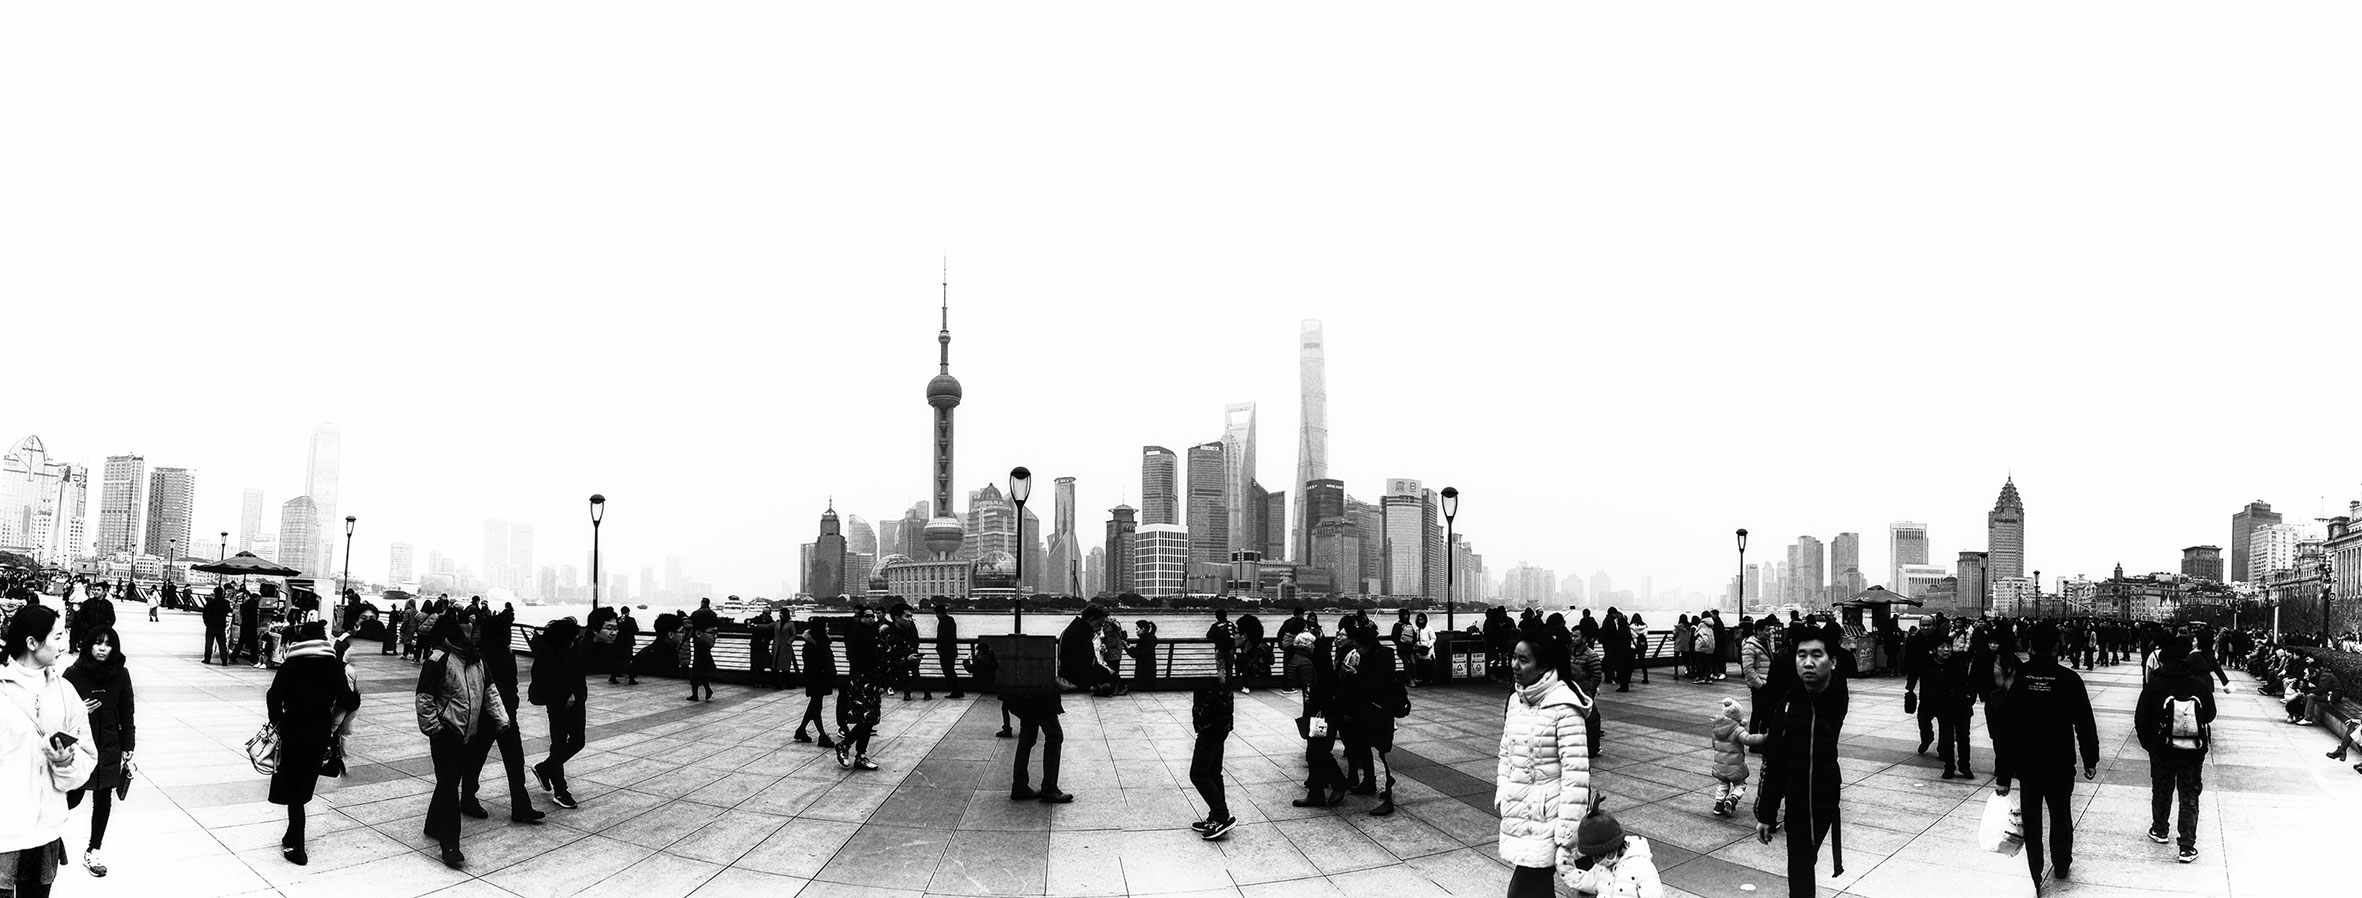 Panorama Skyline Shanghai - The Ring